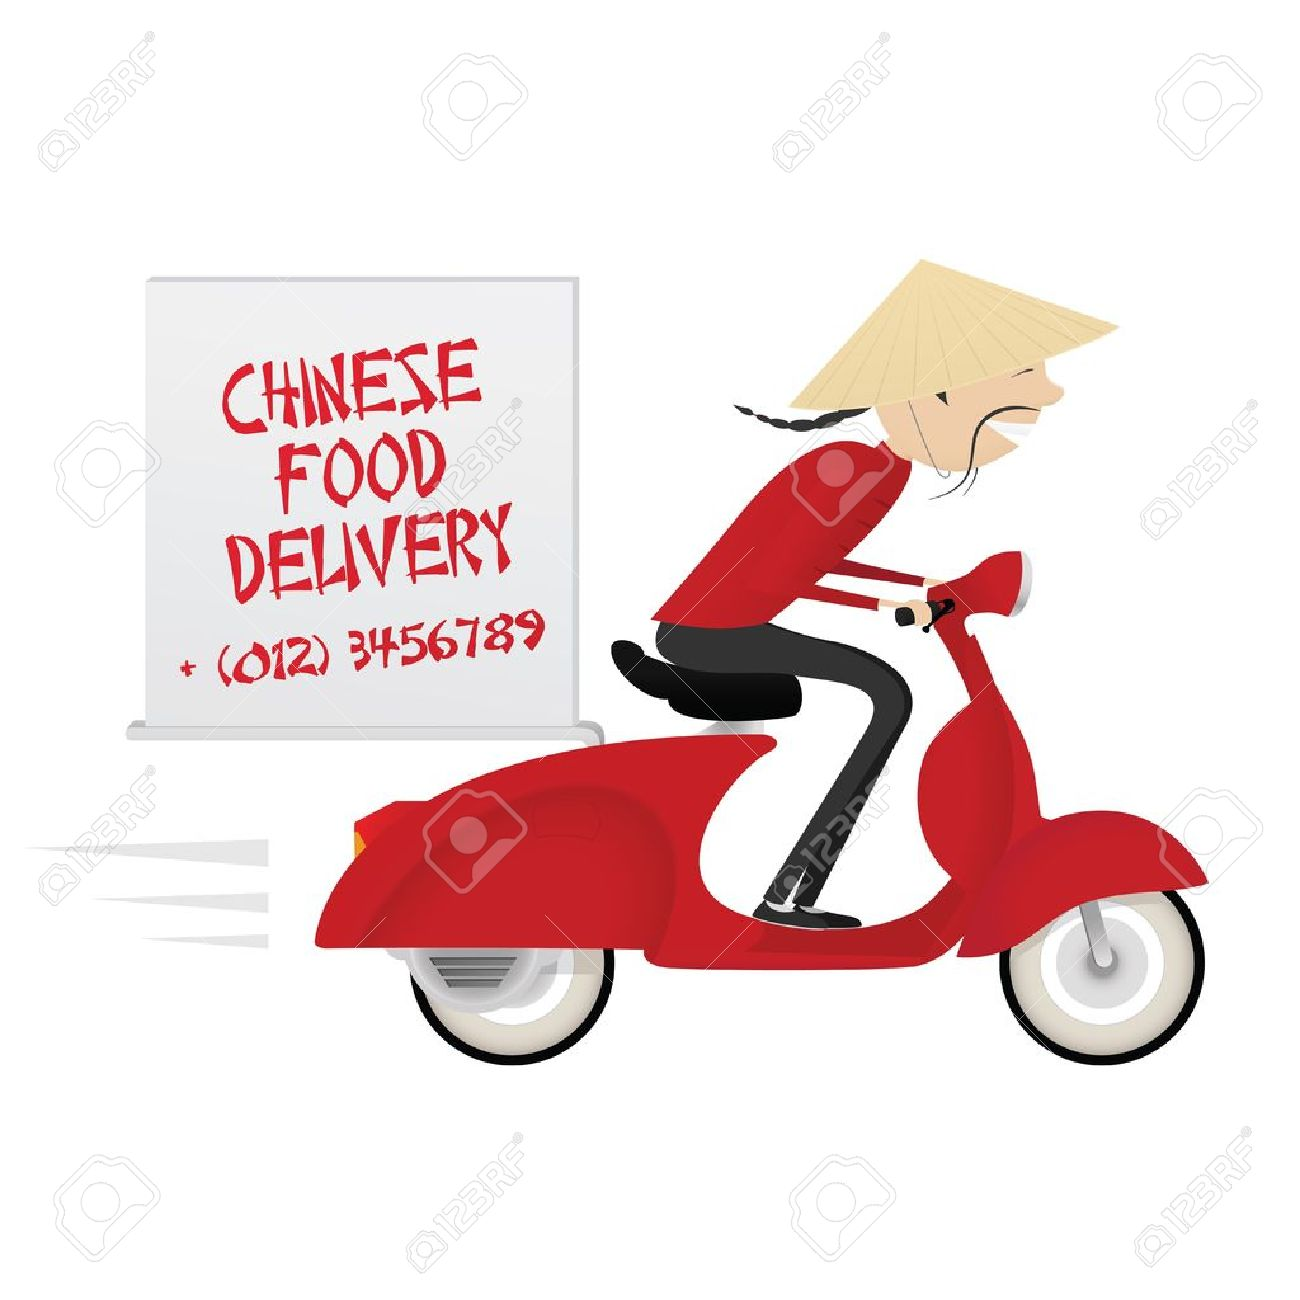 Funny chinese food delivery boy riding motor bike